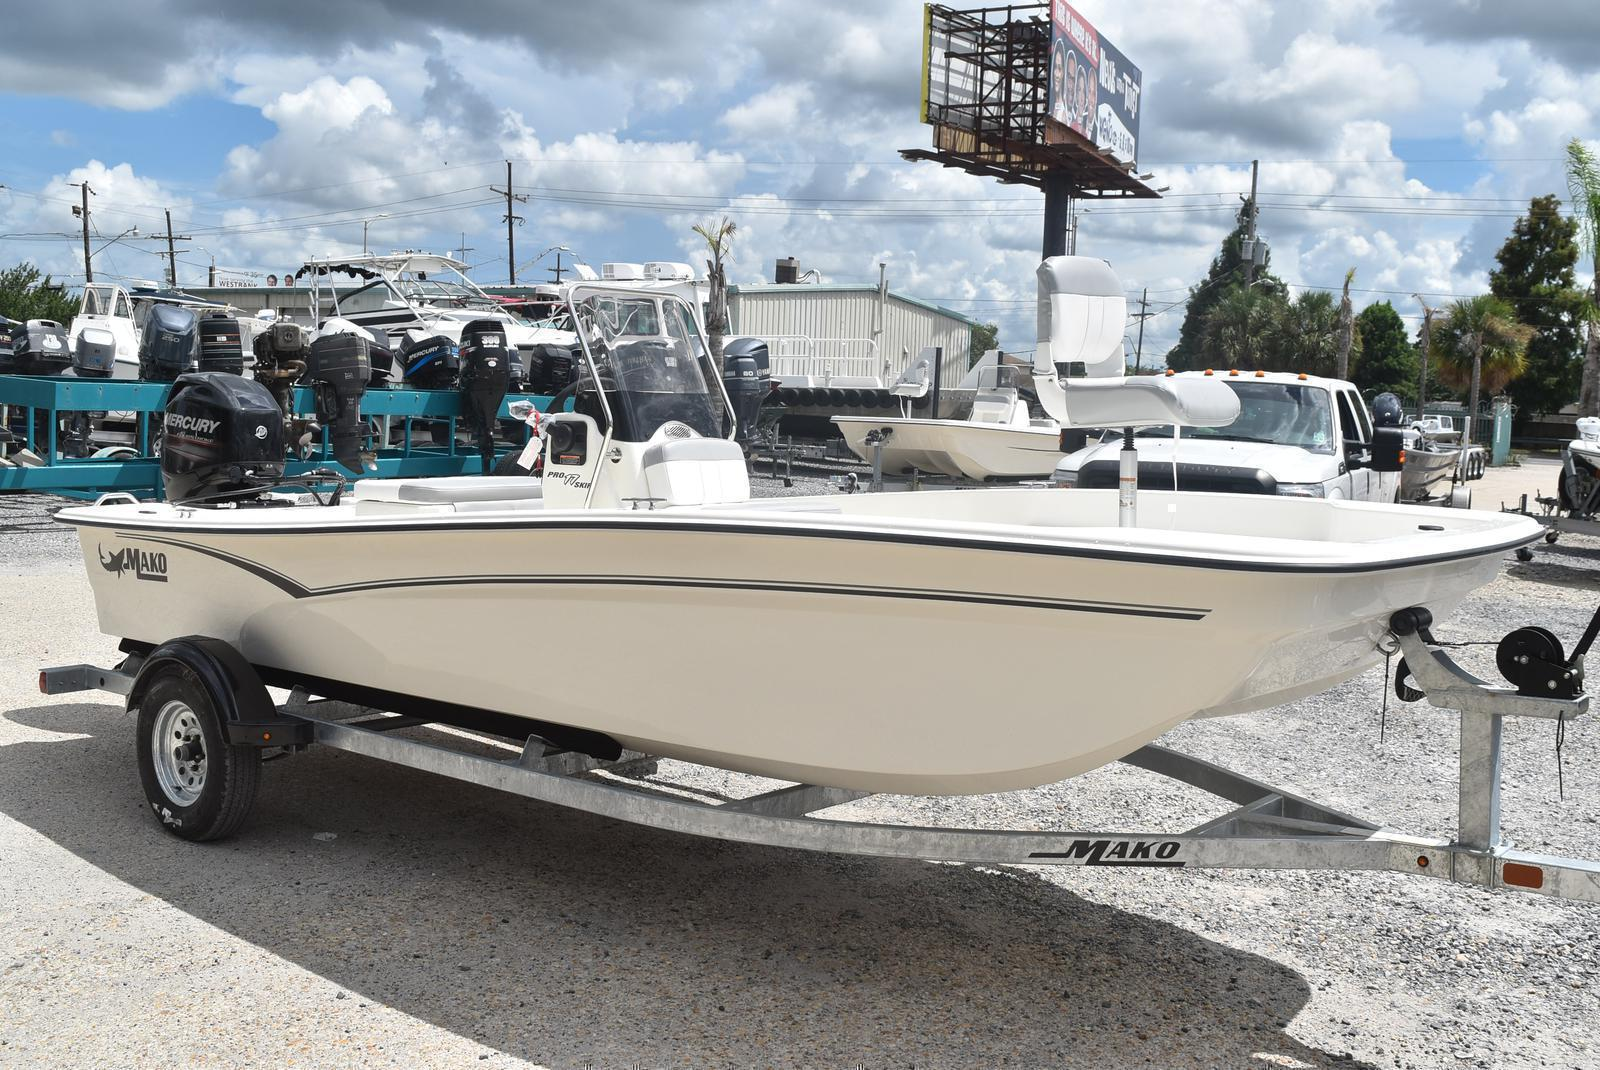 2020 Mako boat for sale, model of the boat is Pro Skiff 17, 75 ELPT & Image # 695 of 702